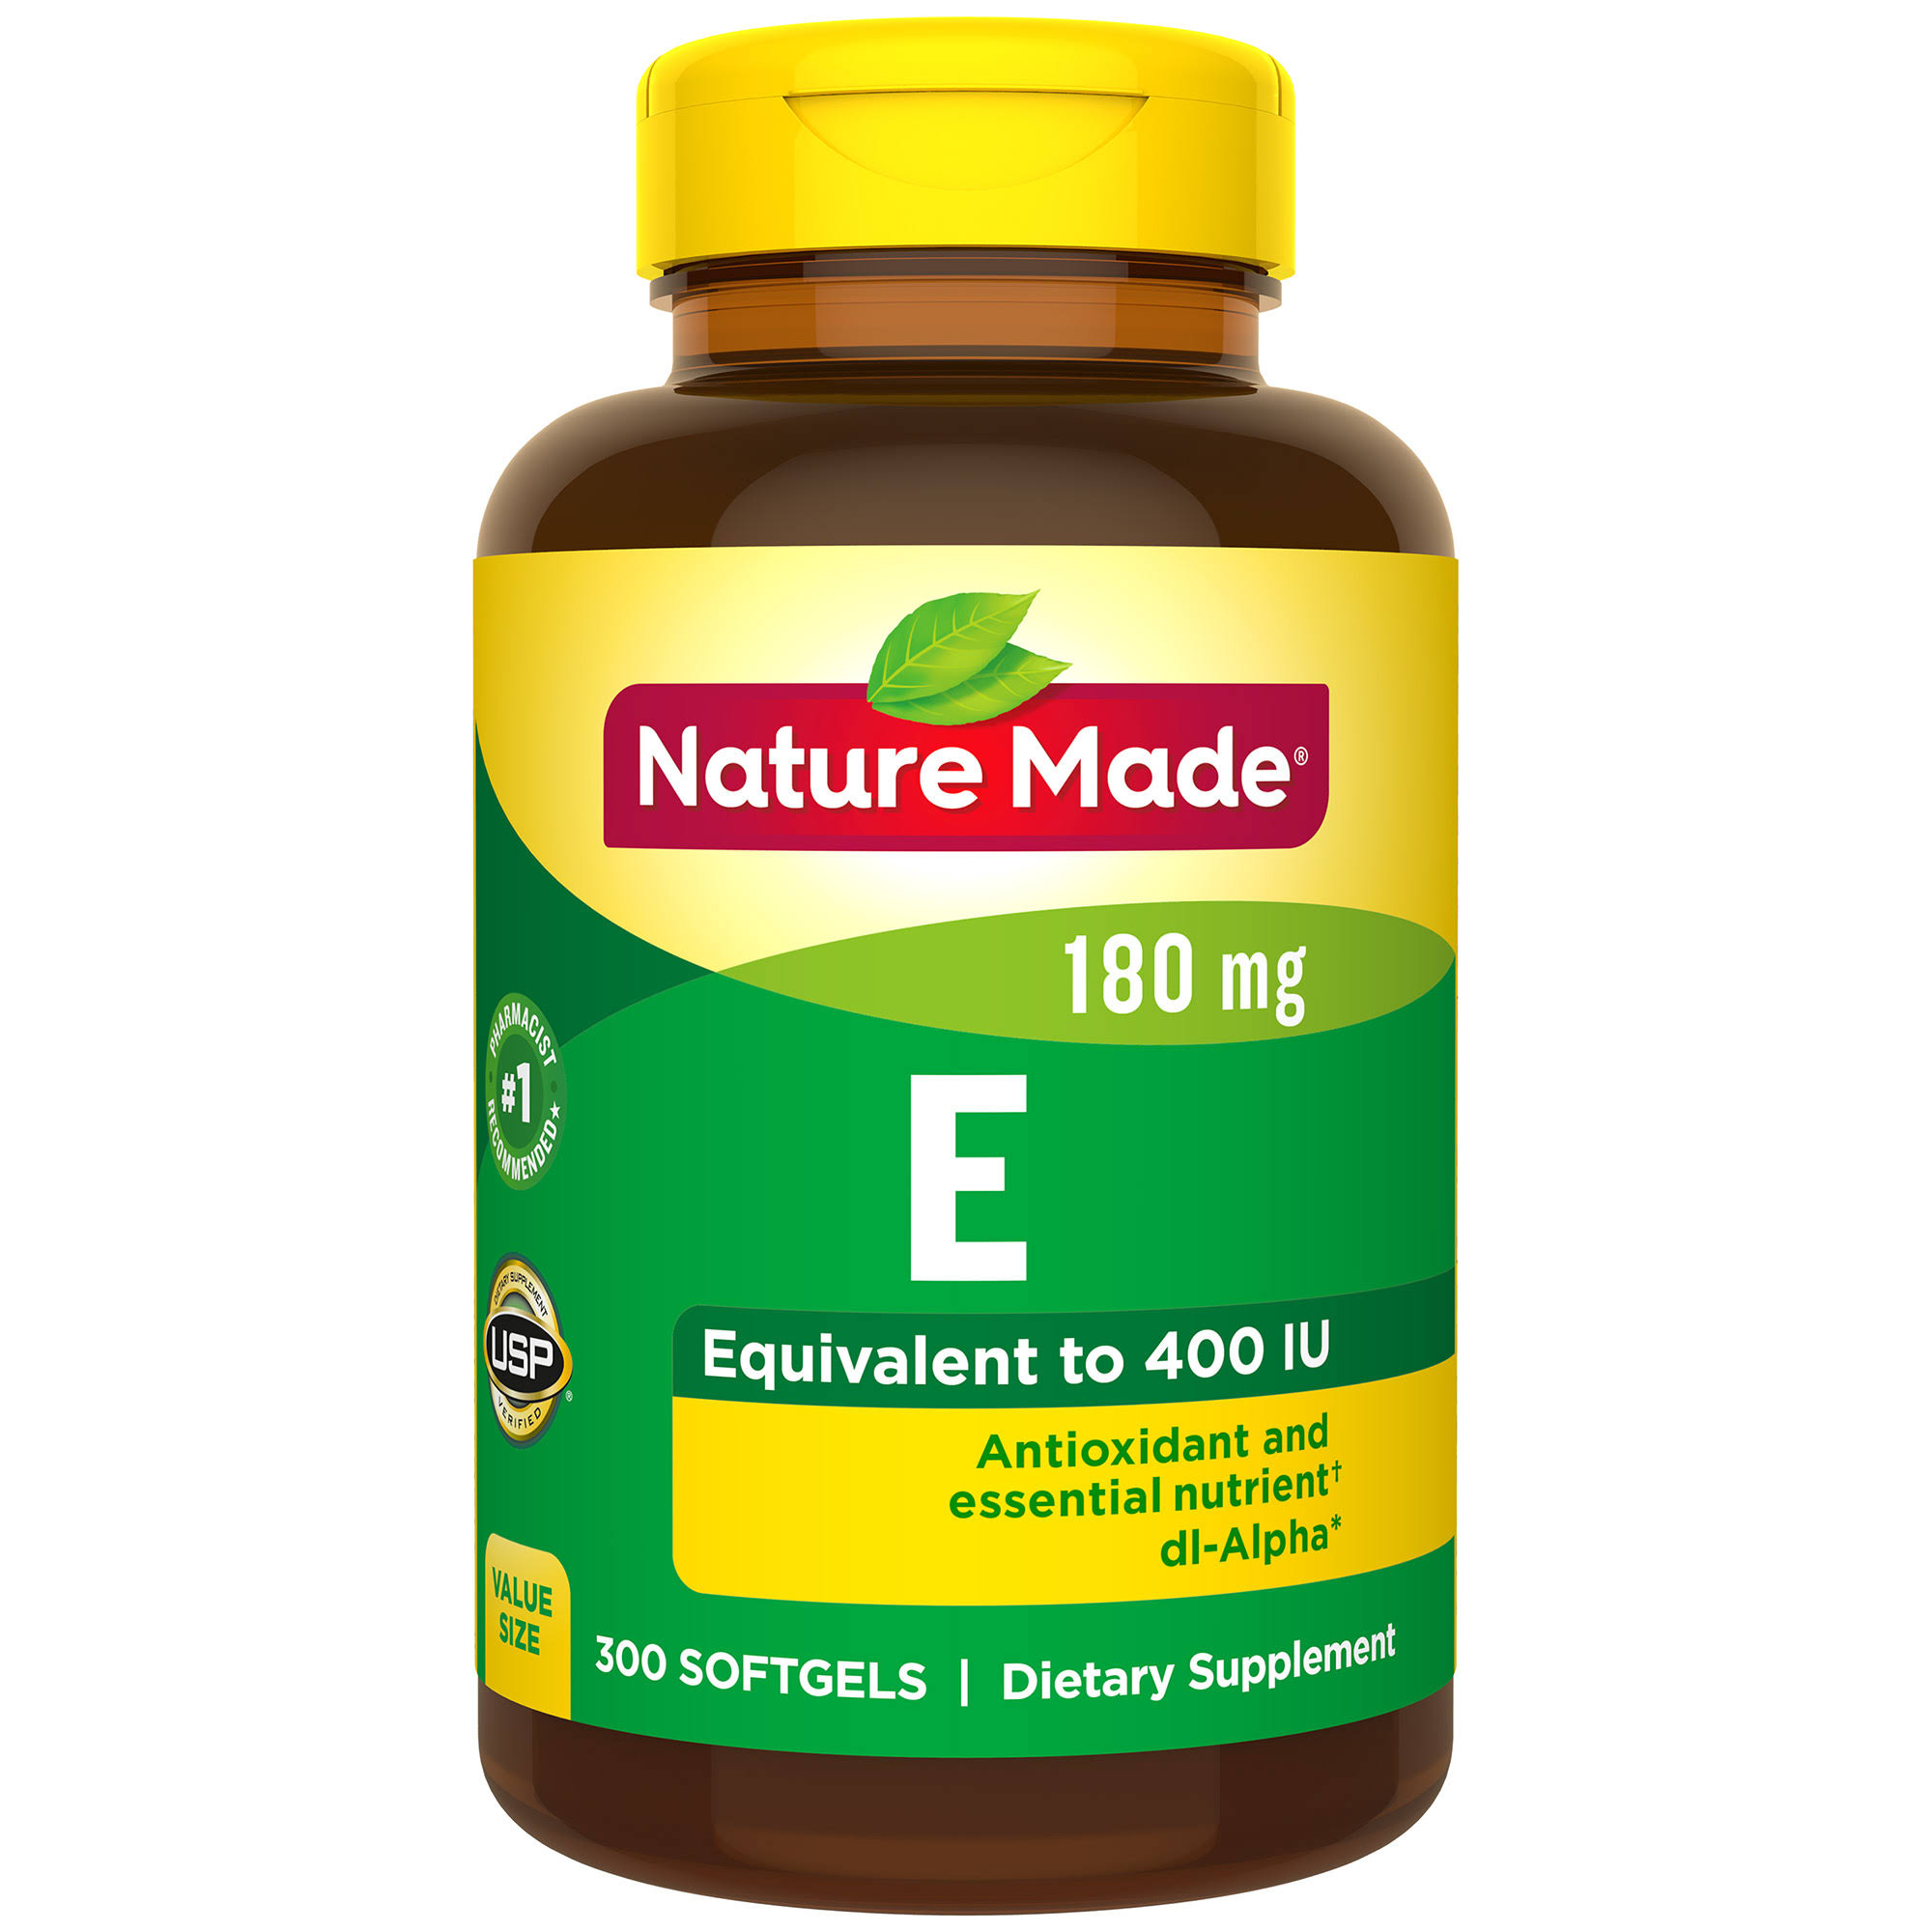 Nature Made Vitamin E Dl Alpha Softgel Supplement - 400 IU, 100ct